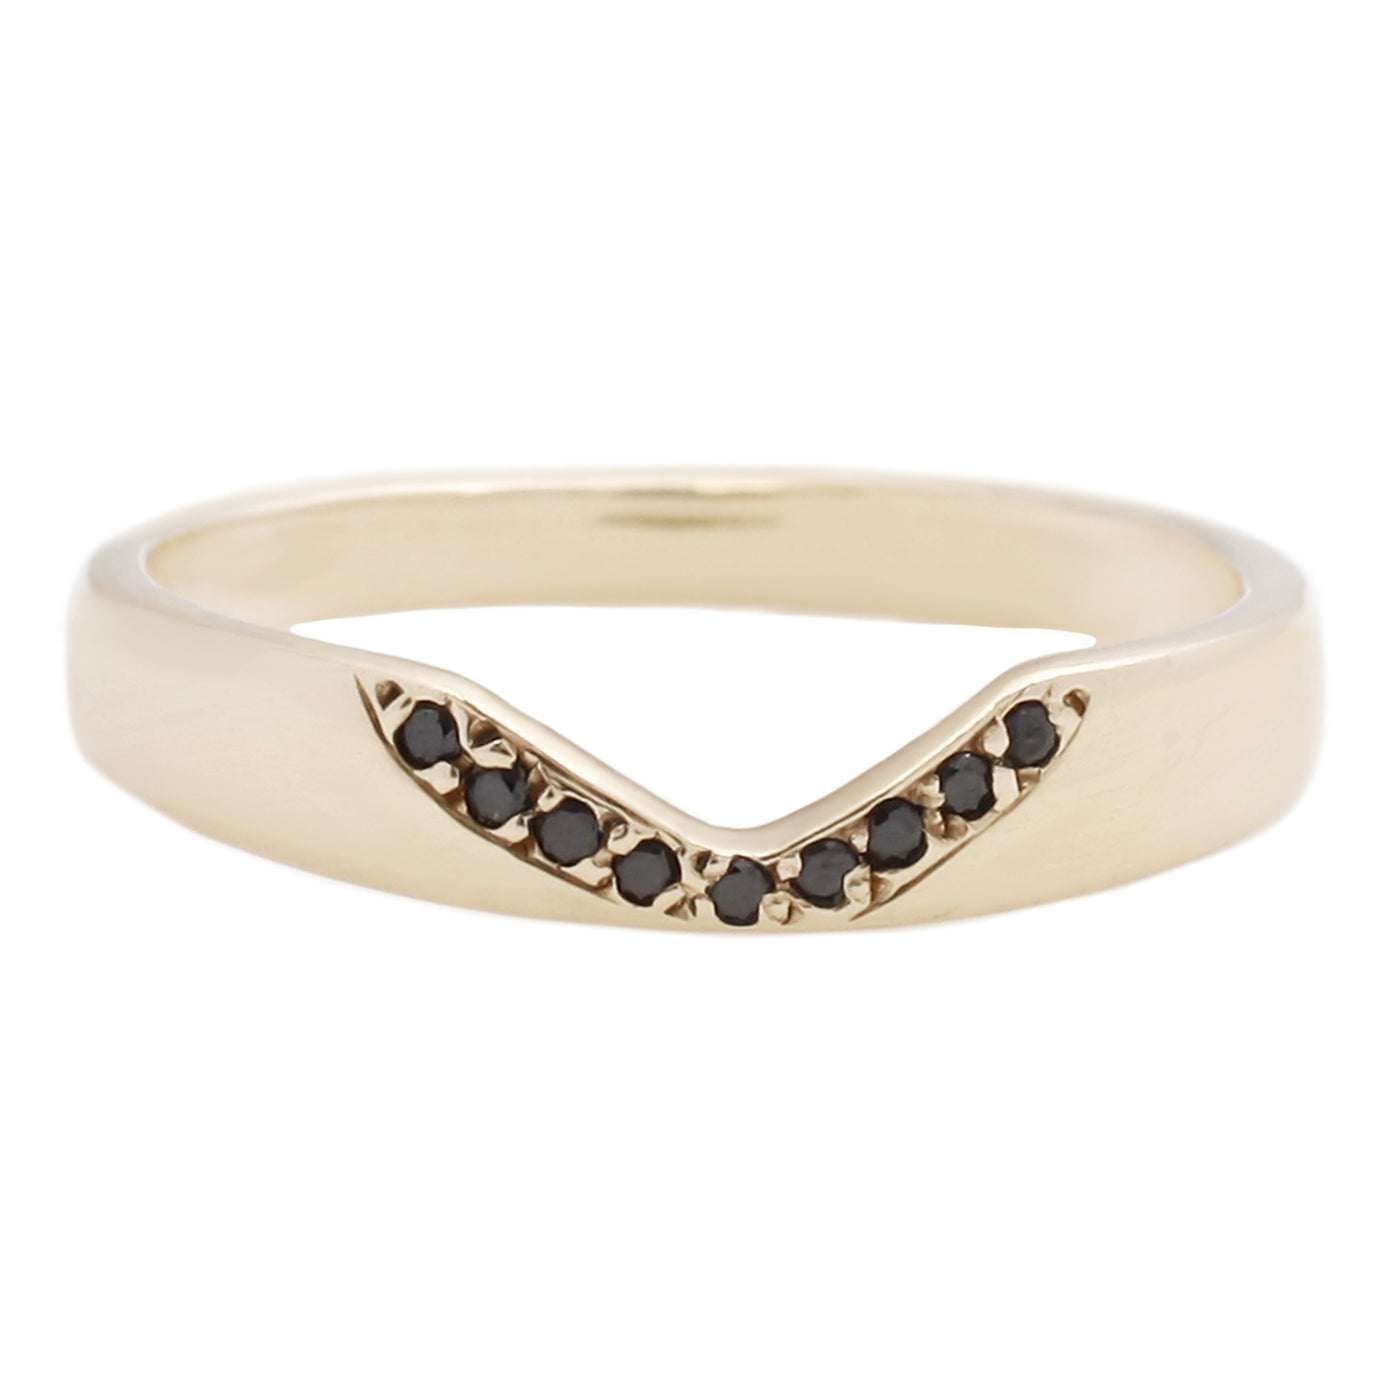 Adeline Gold Corona V Ring with Black Diamonds